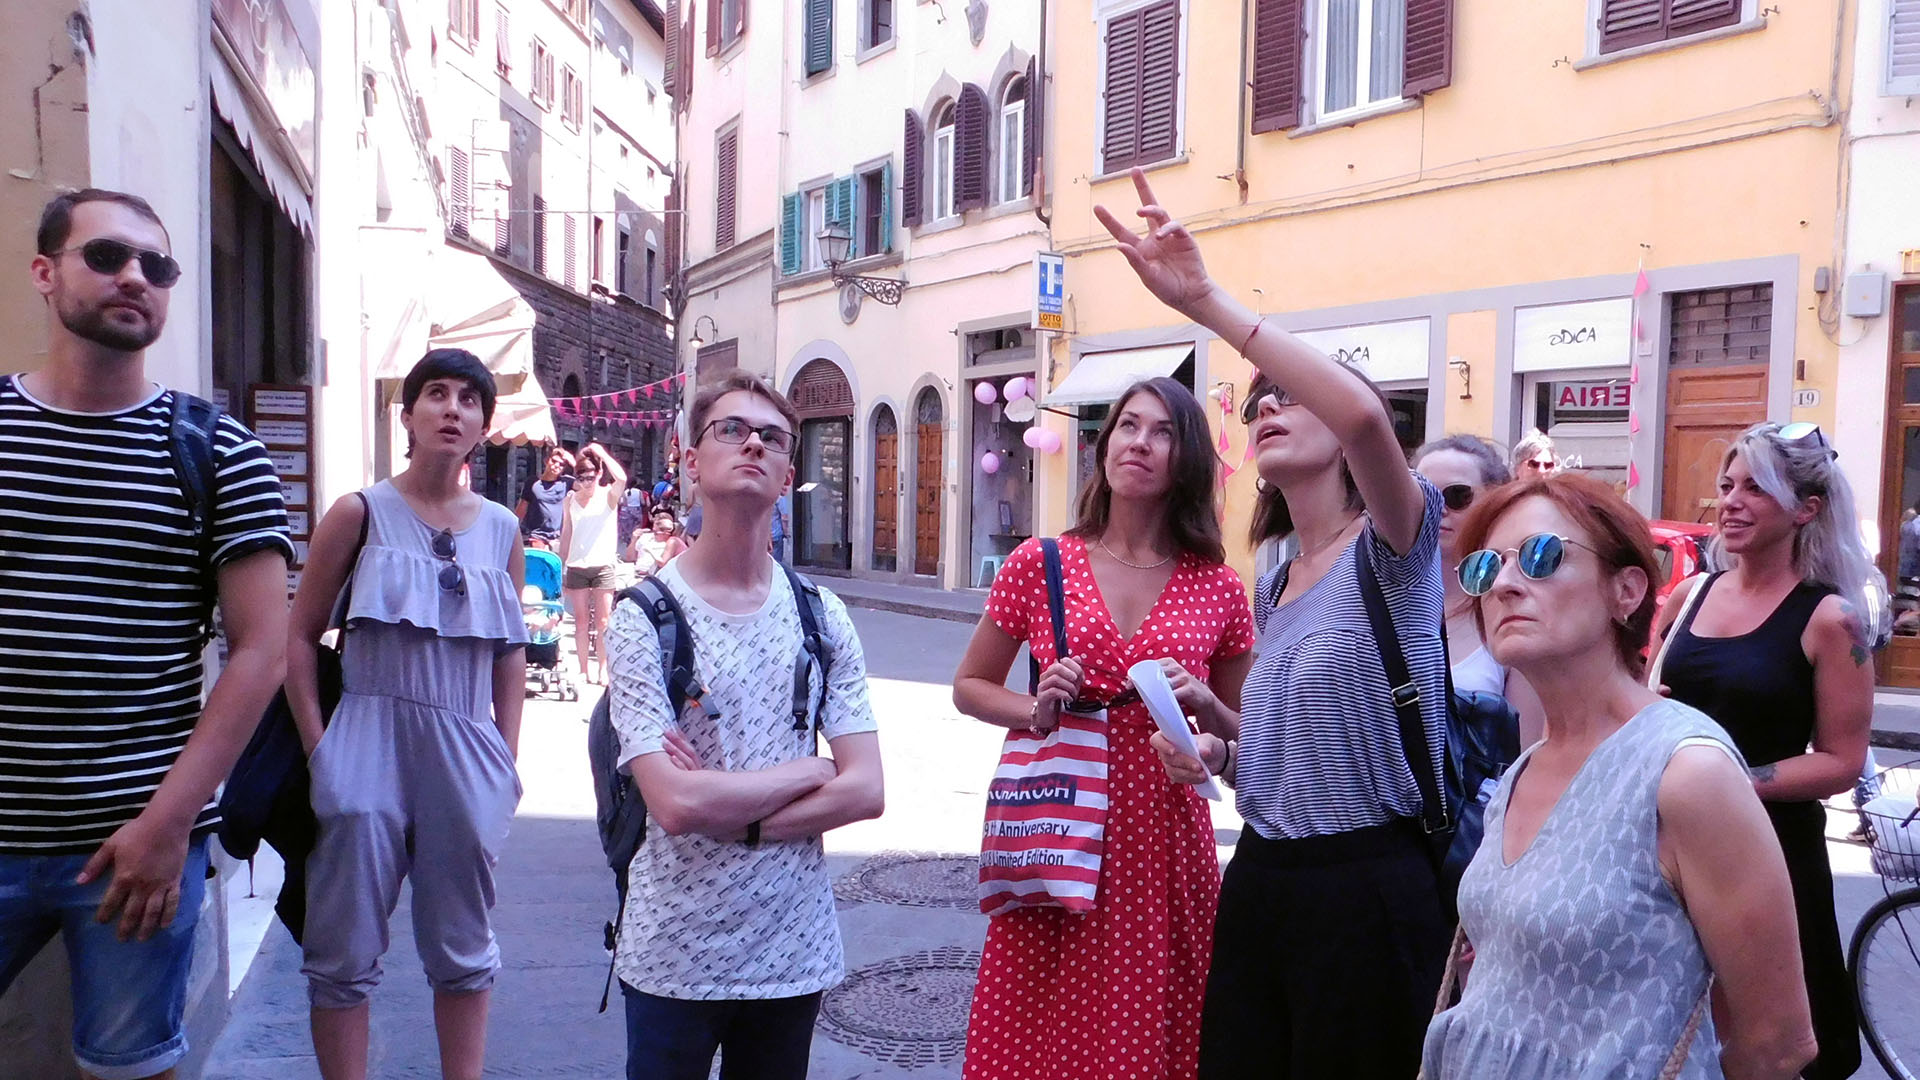 Activity of Parola Italian language school in Florence